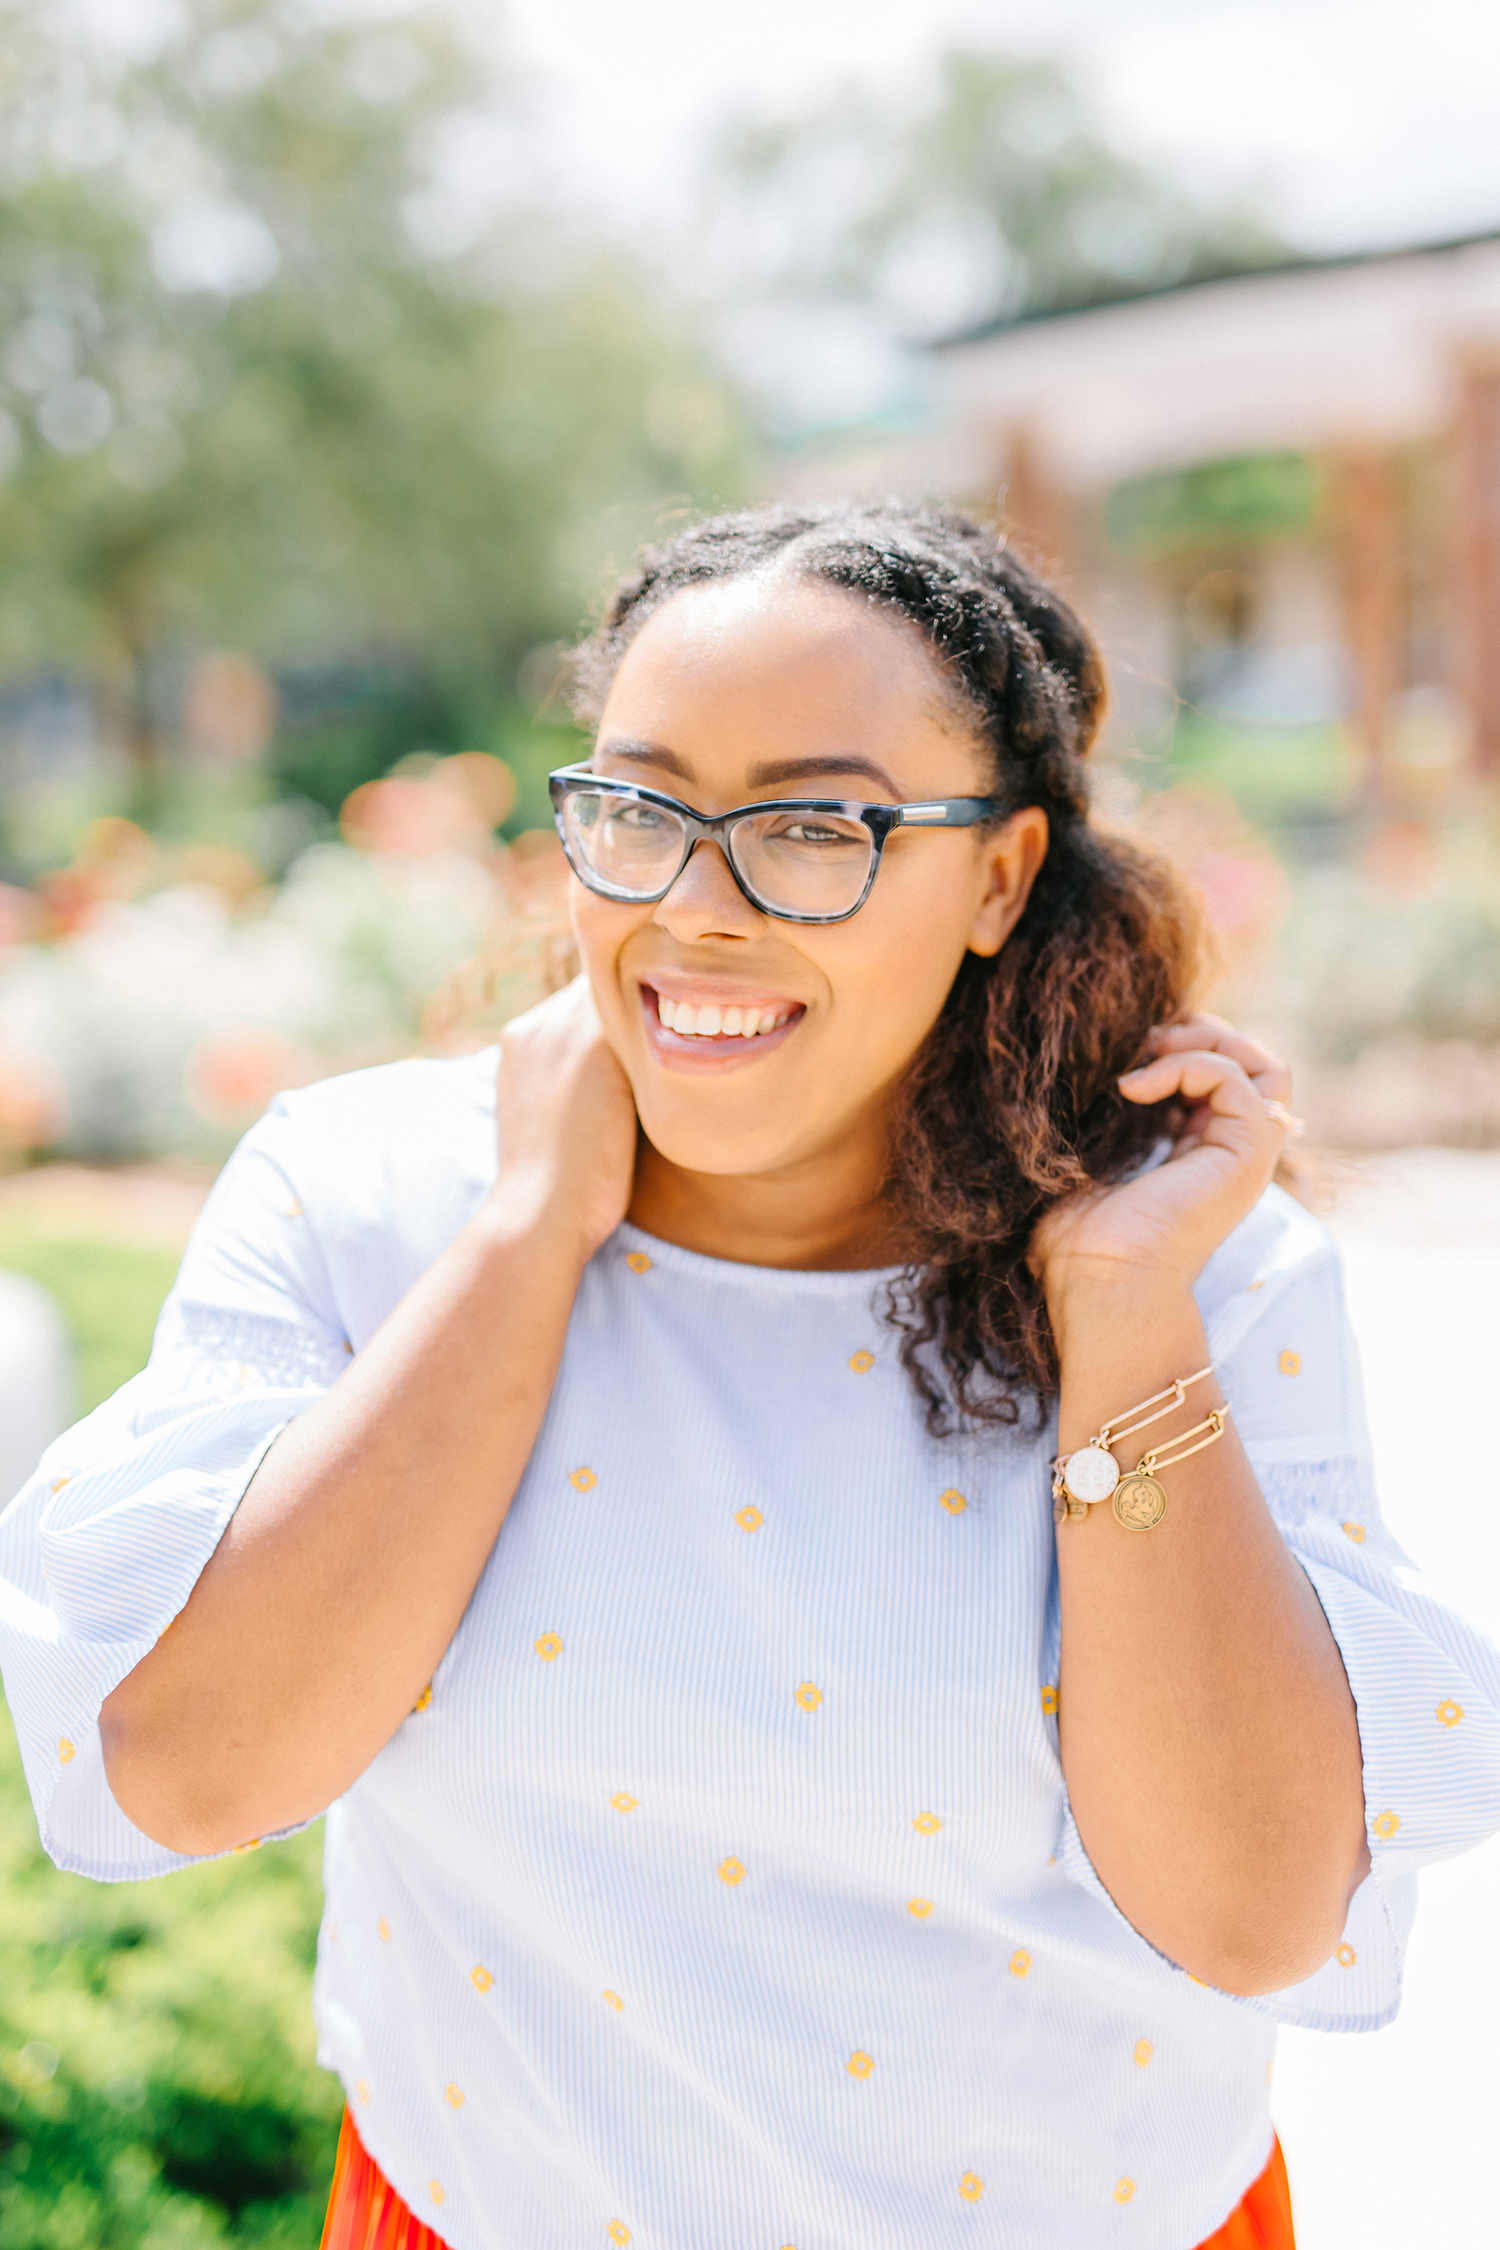 Tips for Walking in Your Purpose Without Looking Back - Bianca Dottin